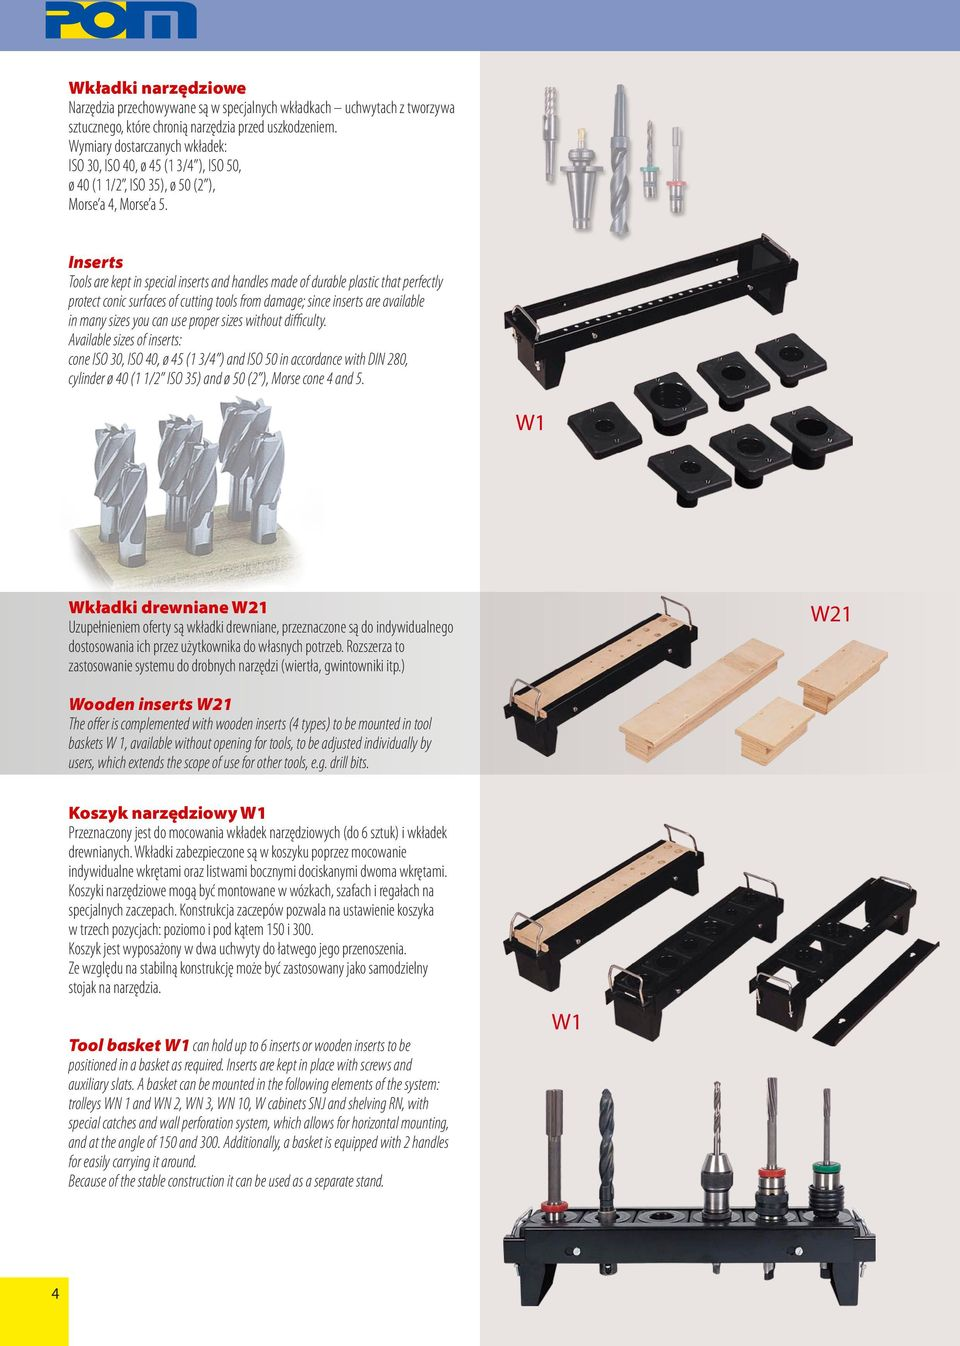 Inserts Tools are kept in special inserts and handles made of durable plastic that perfectly protect conic surfaces of cutting tools from damage; since inserts are available in many sizes you can use